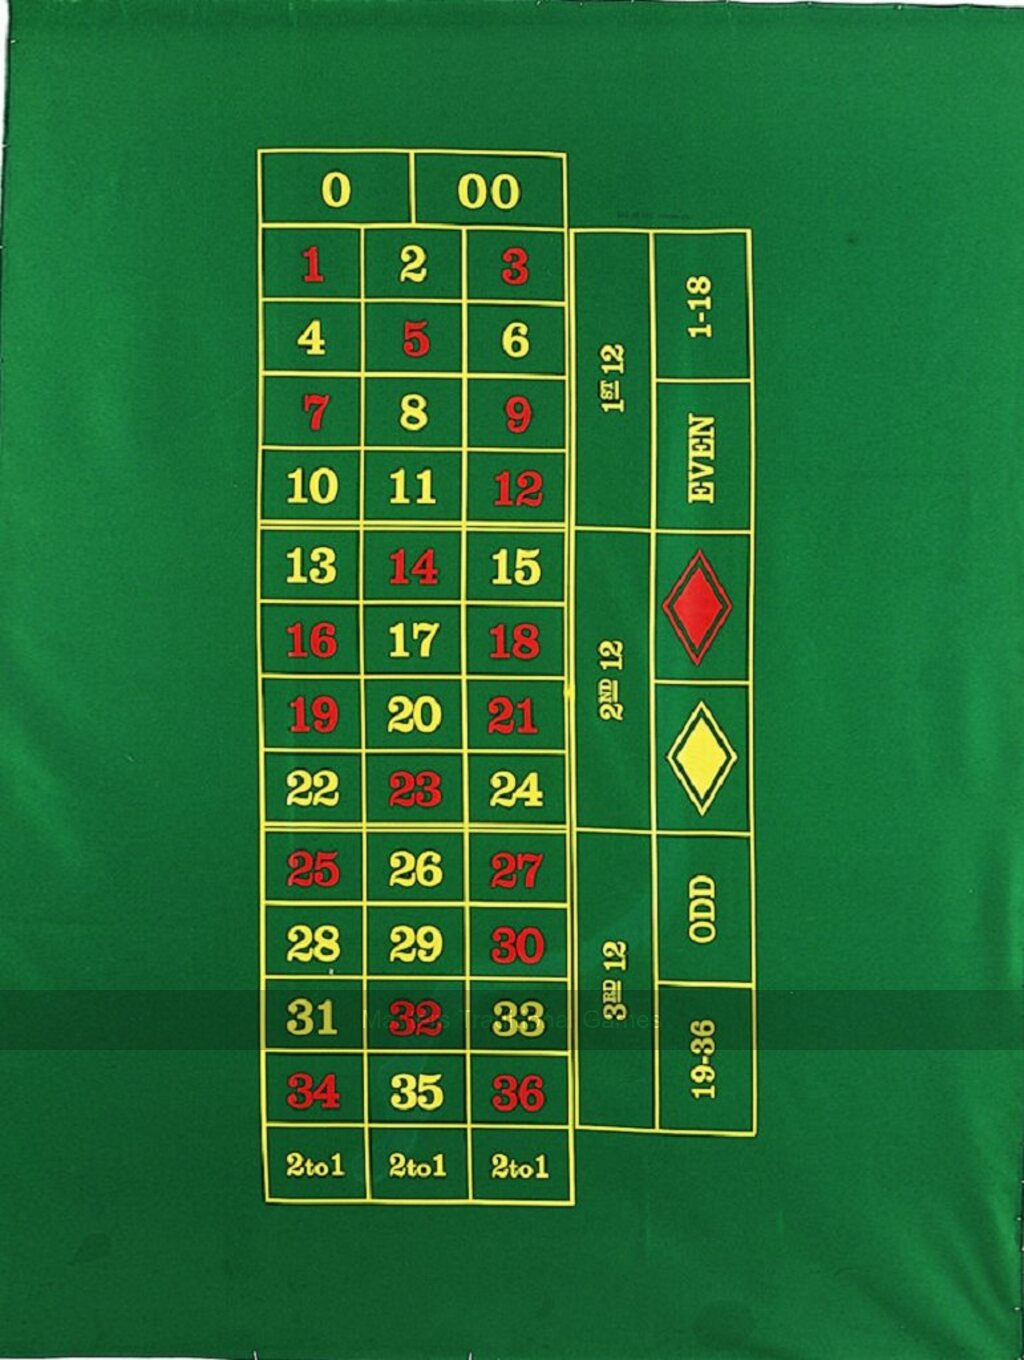 professional football betting rules for roulette